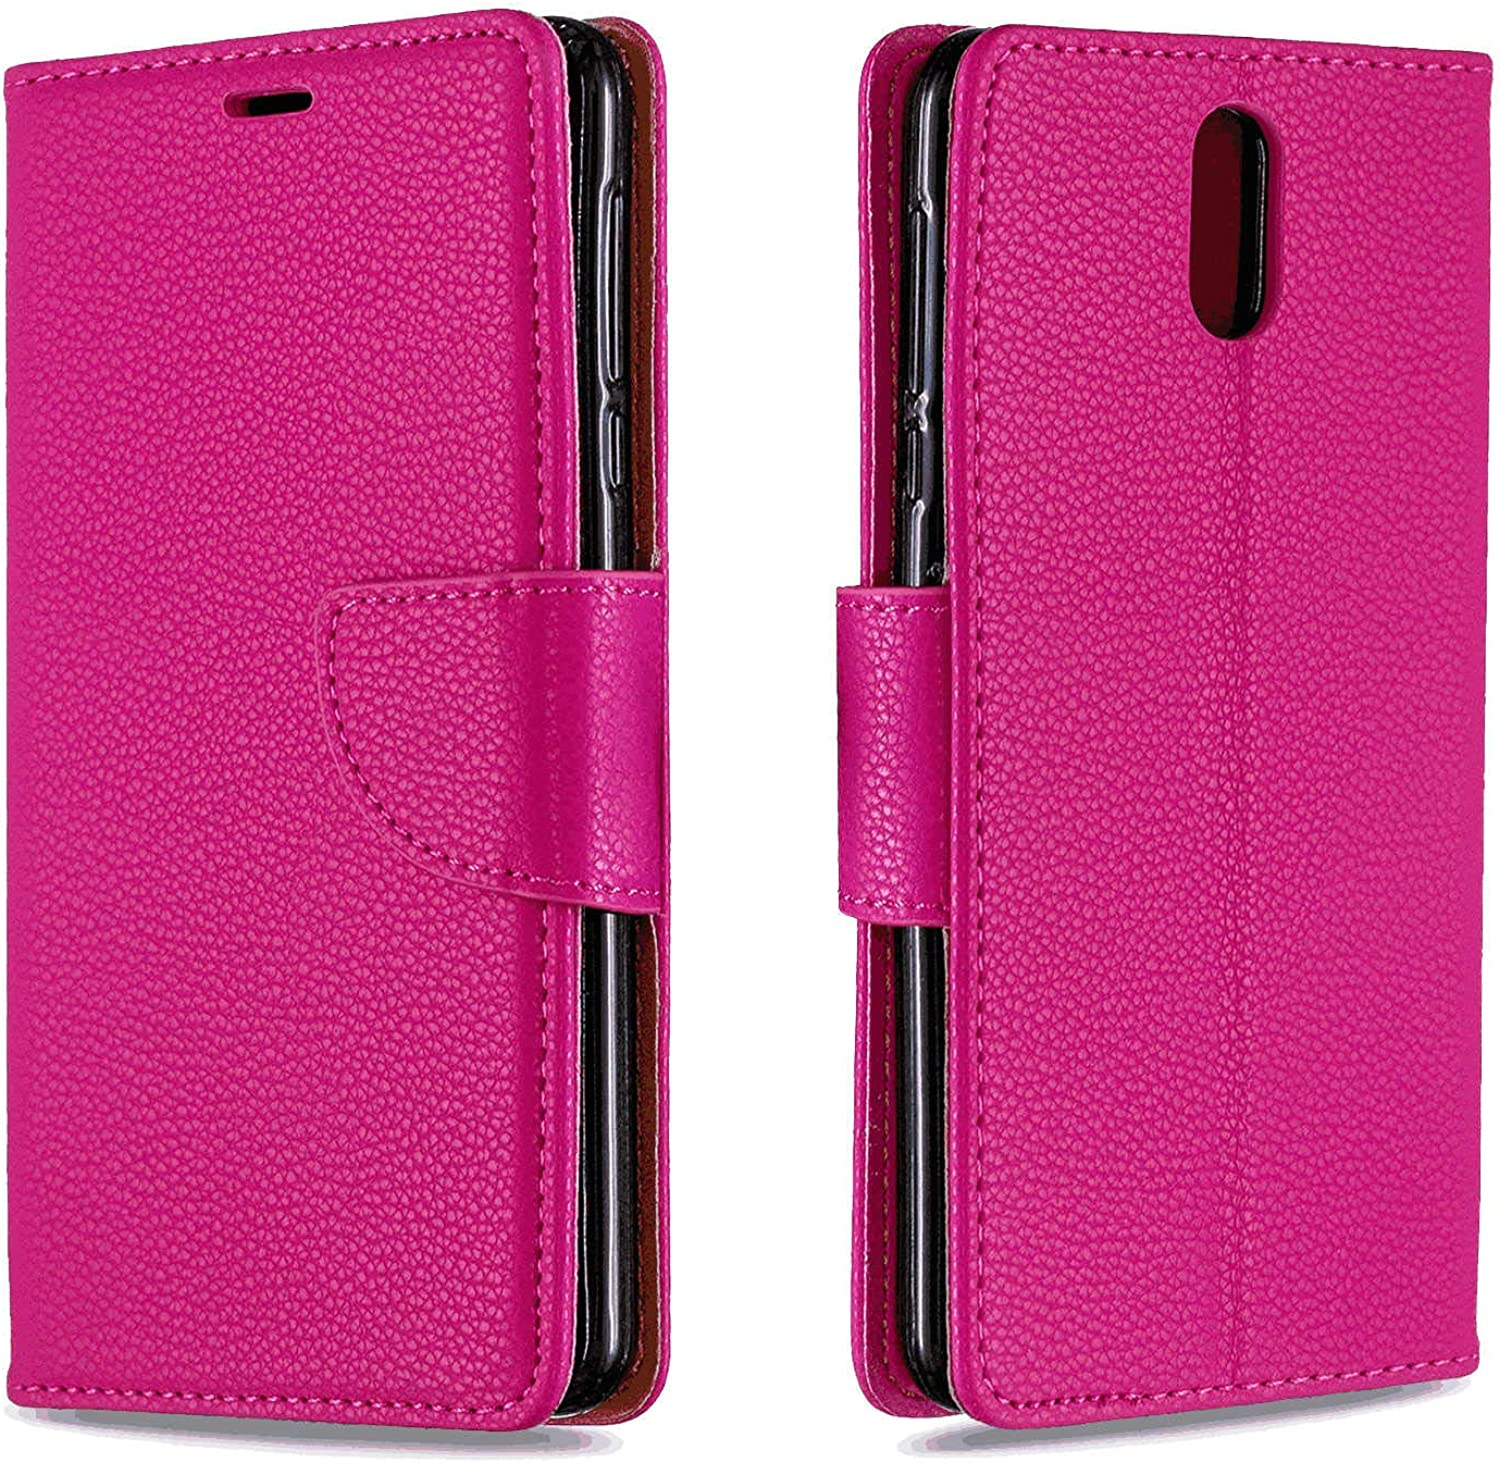 Flip Cover fit for iPhone 11 Pro Max Business Gifts Simple-Style Leather Case for iPhone 11 Pro Max